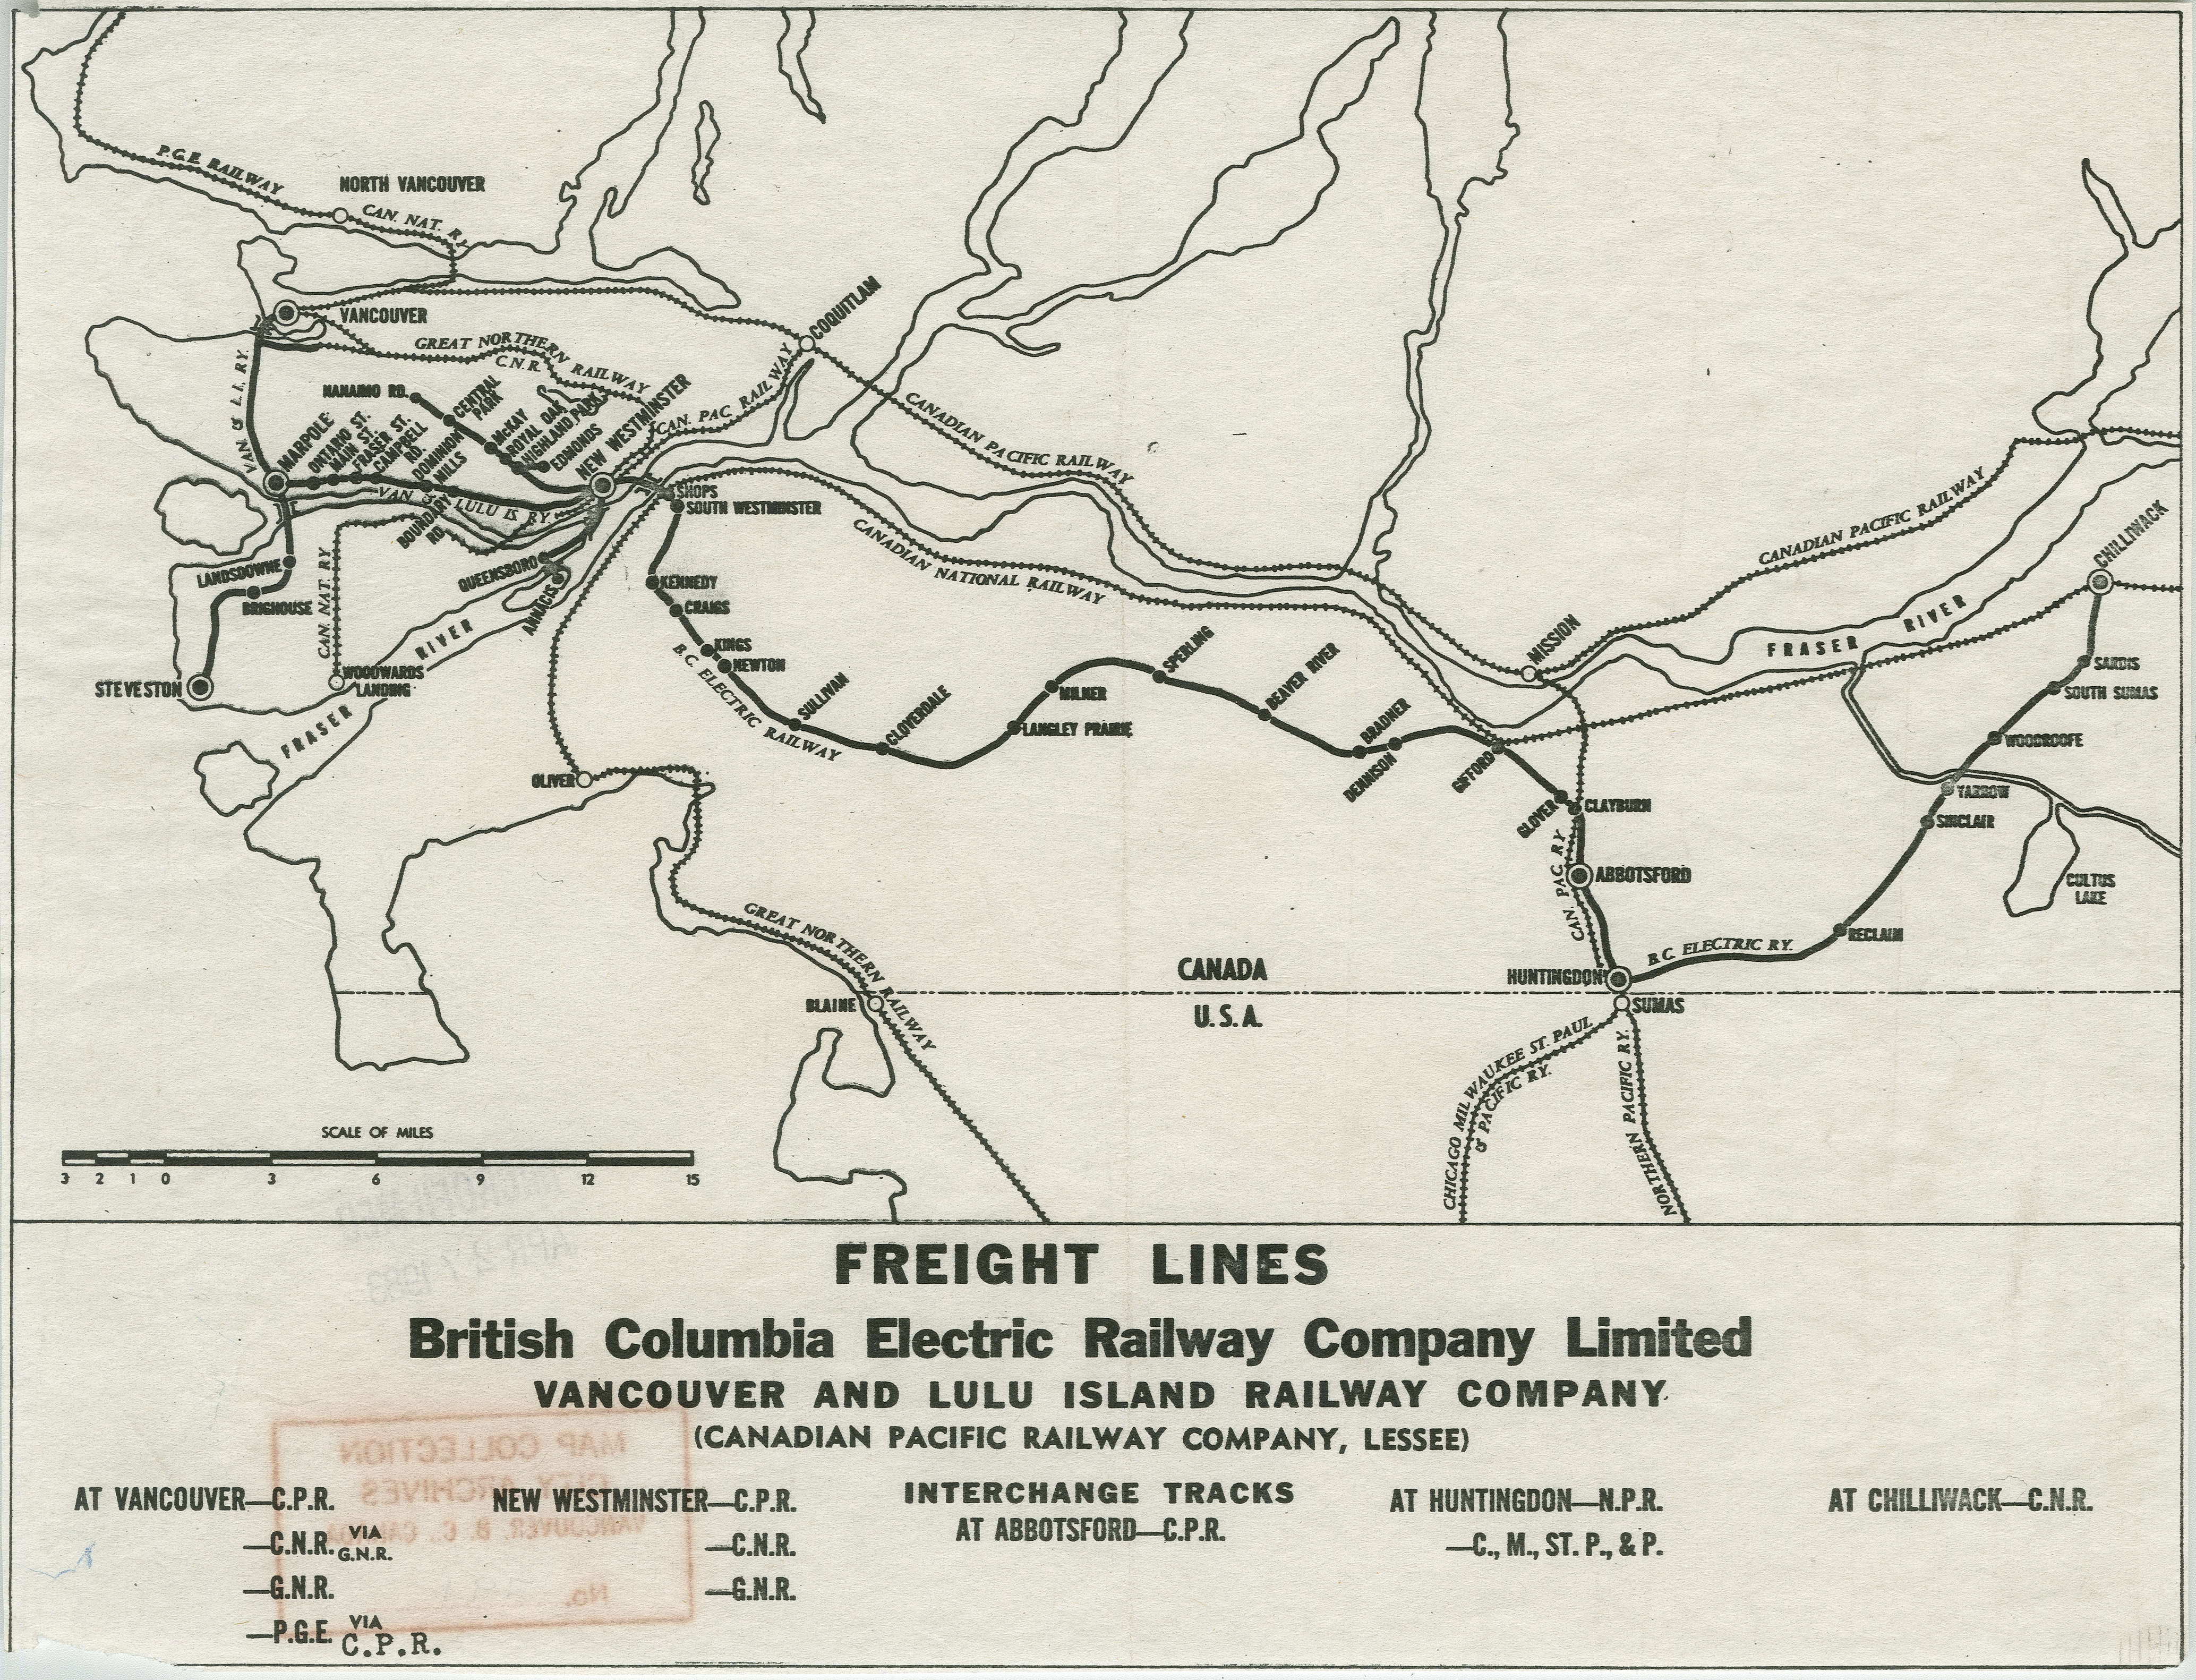 freight lines british columbia electric railway pany limited